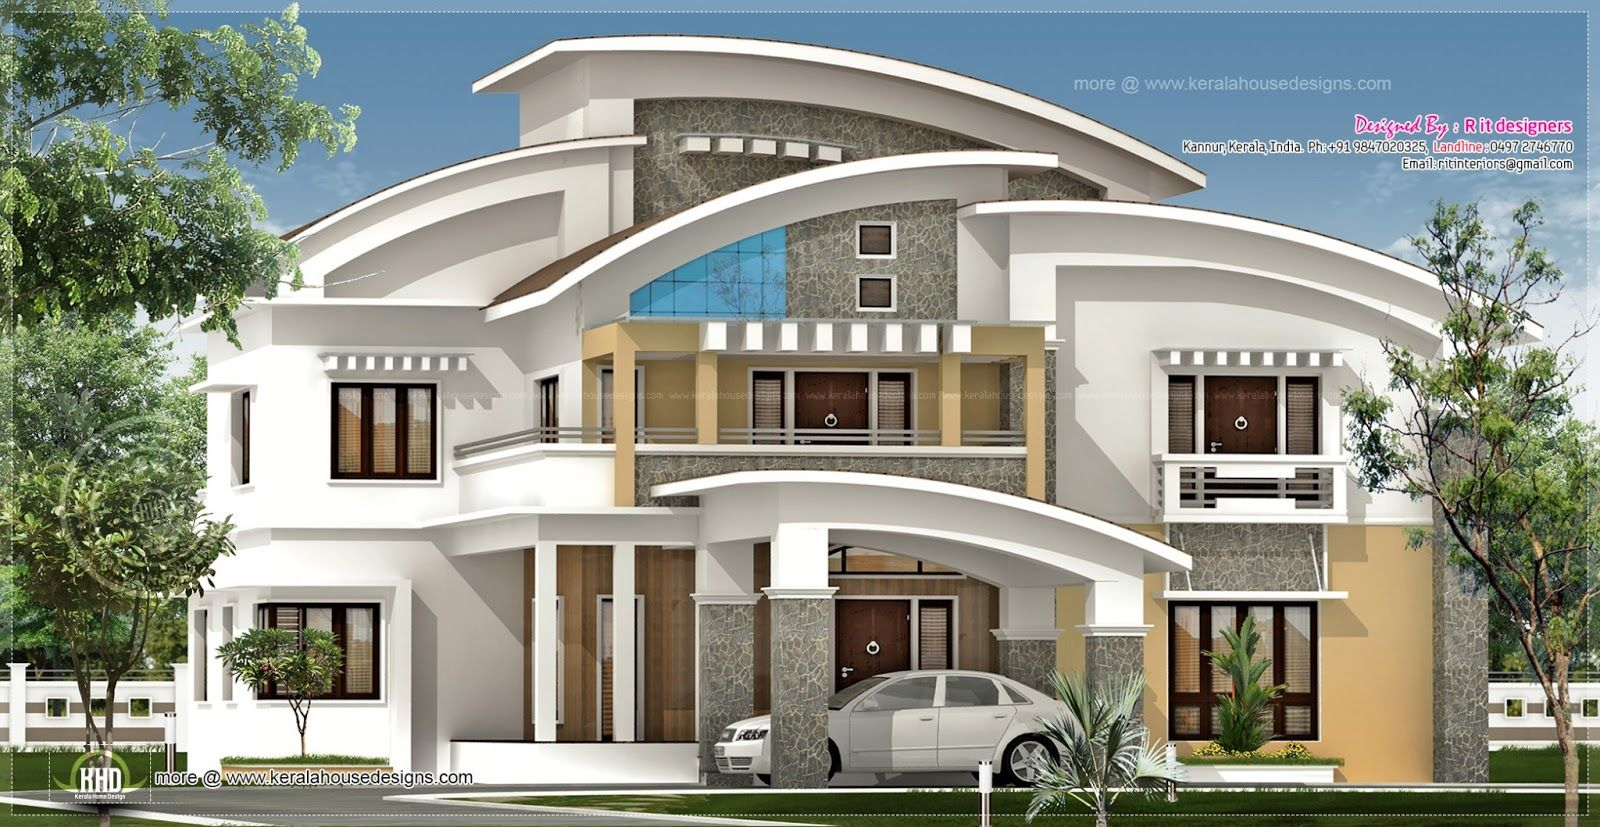 Awesome luxury homes plans 8 french country luxury home for Home exterior design images